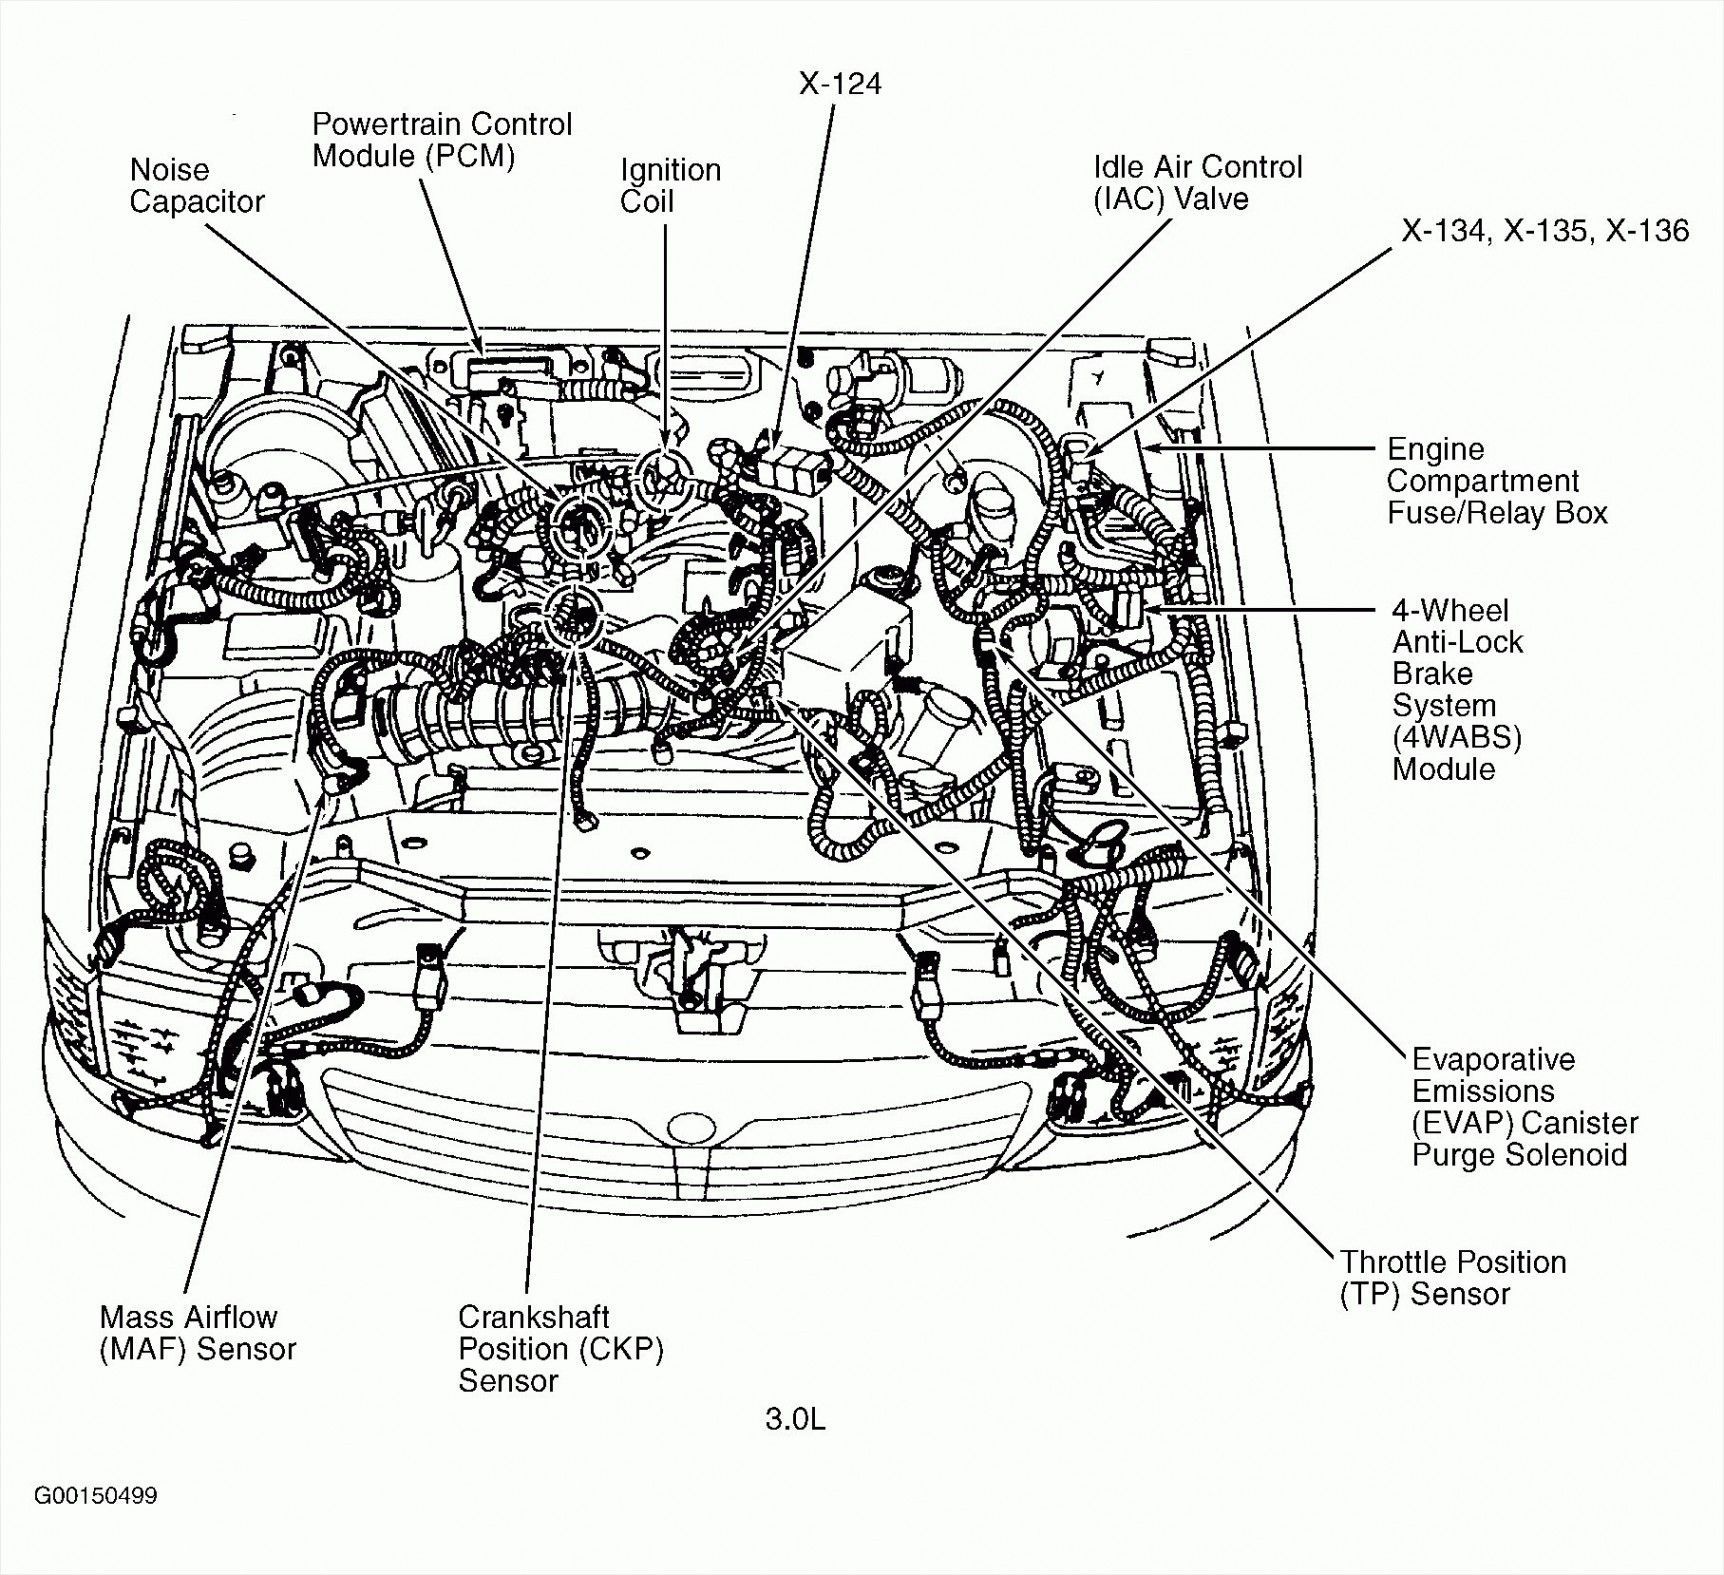 Unique Wiring Diagram 2005 Dodge Ram 1500 Diagram Diagramsample Diagramtemplate Wiringdiagram Diagramchart Worksheet Worksheet Ford Ranger Mazda Diagram